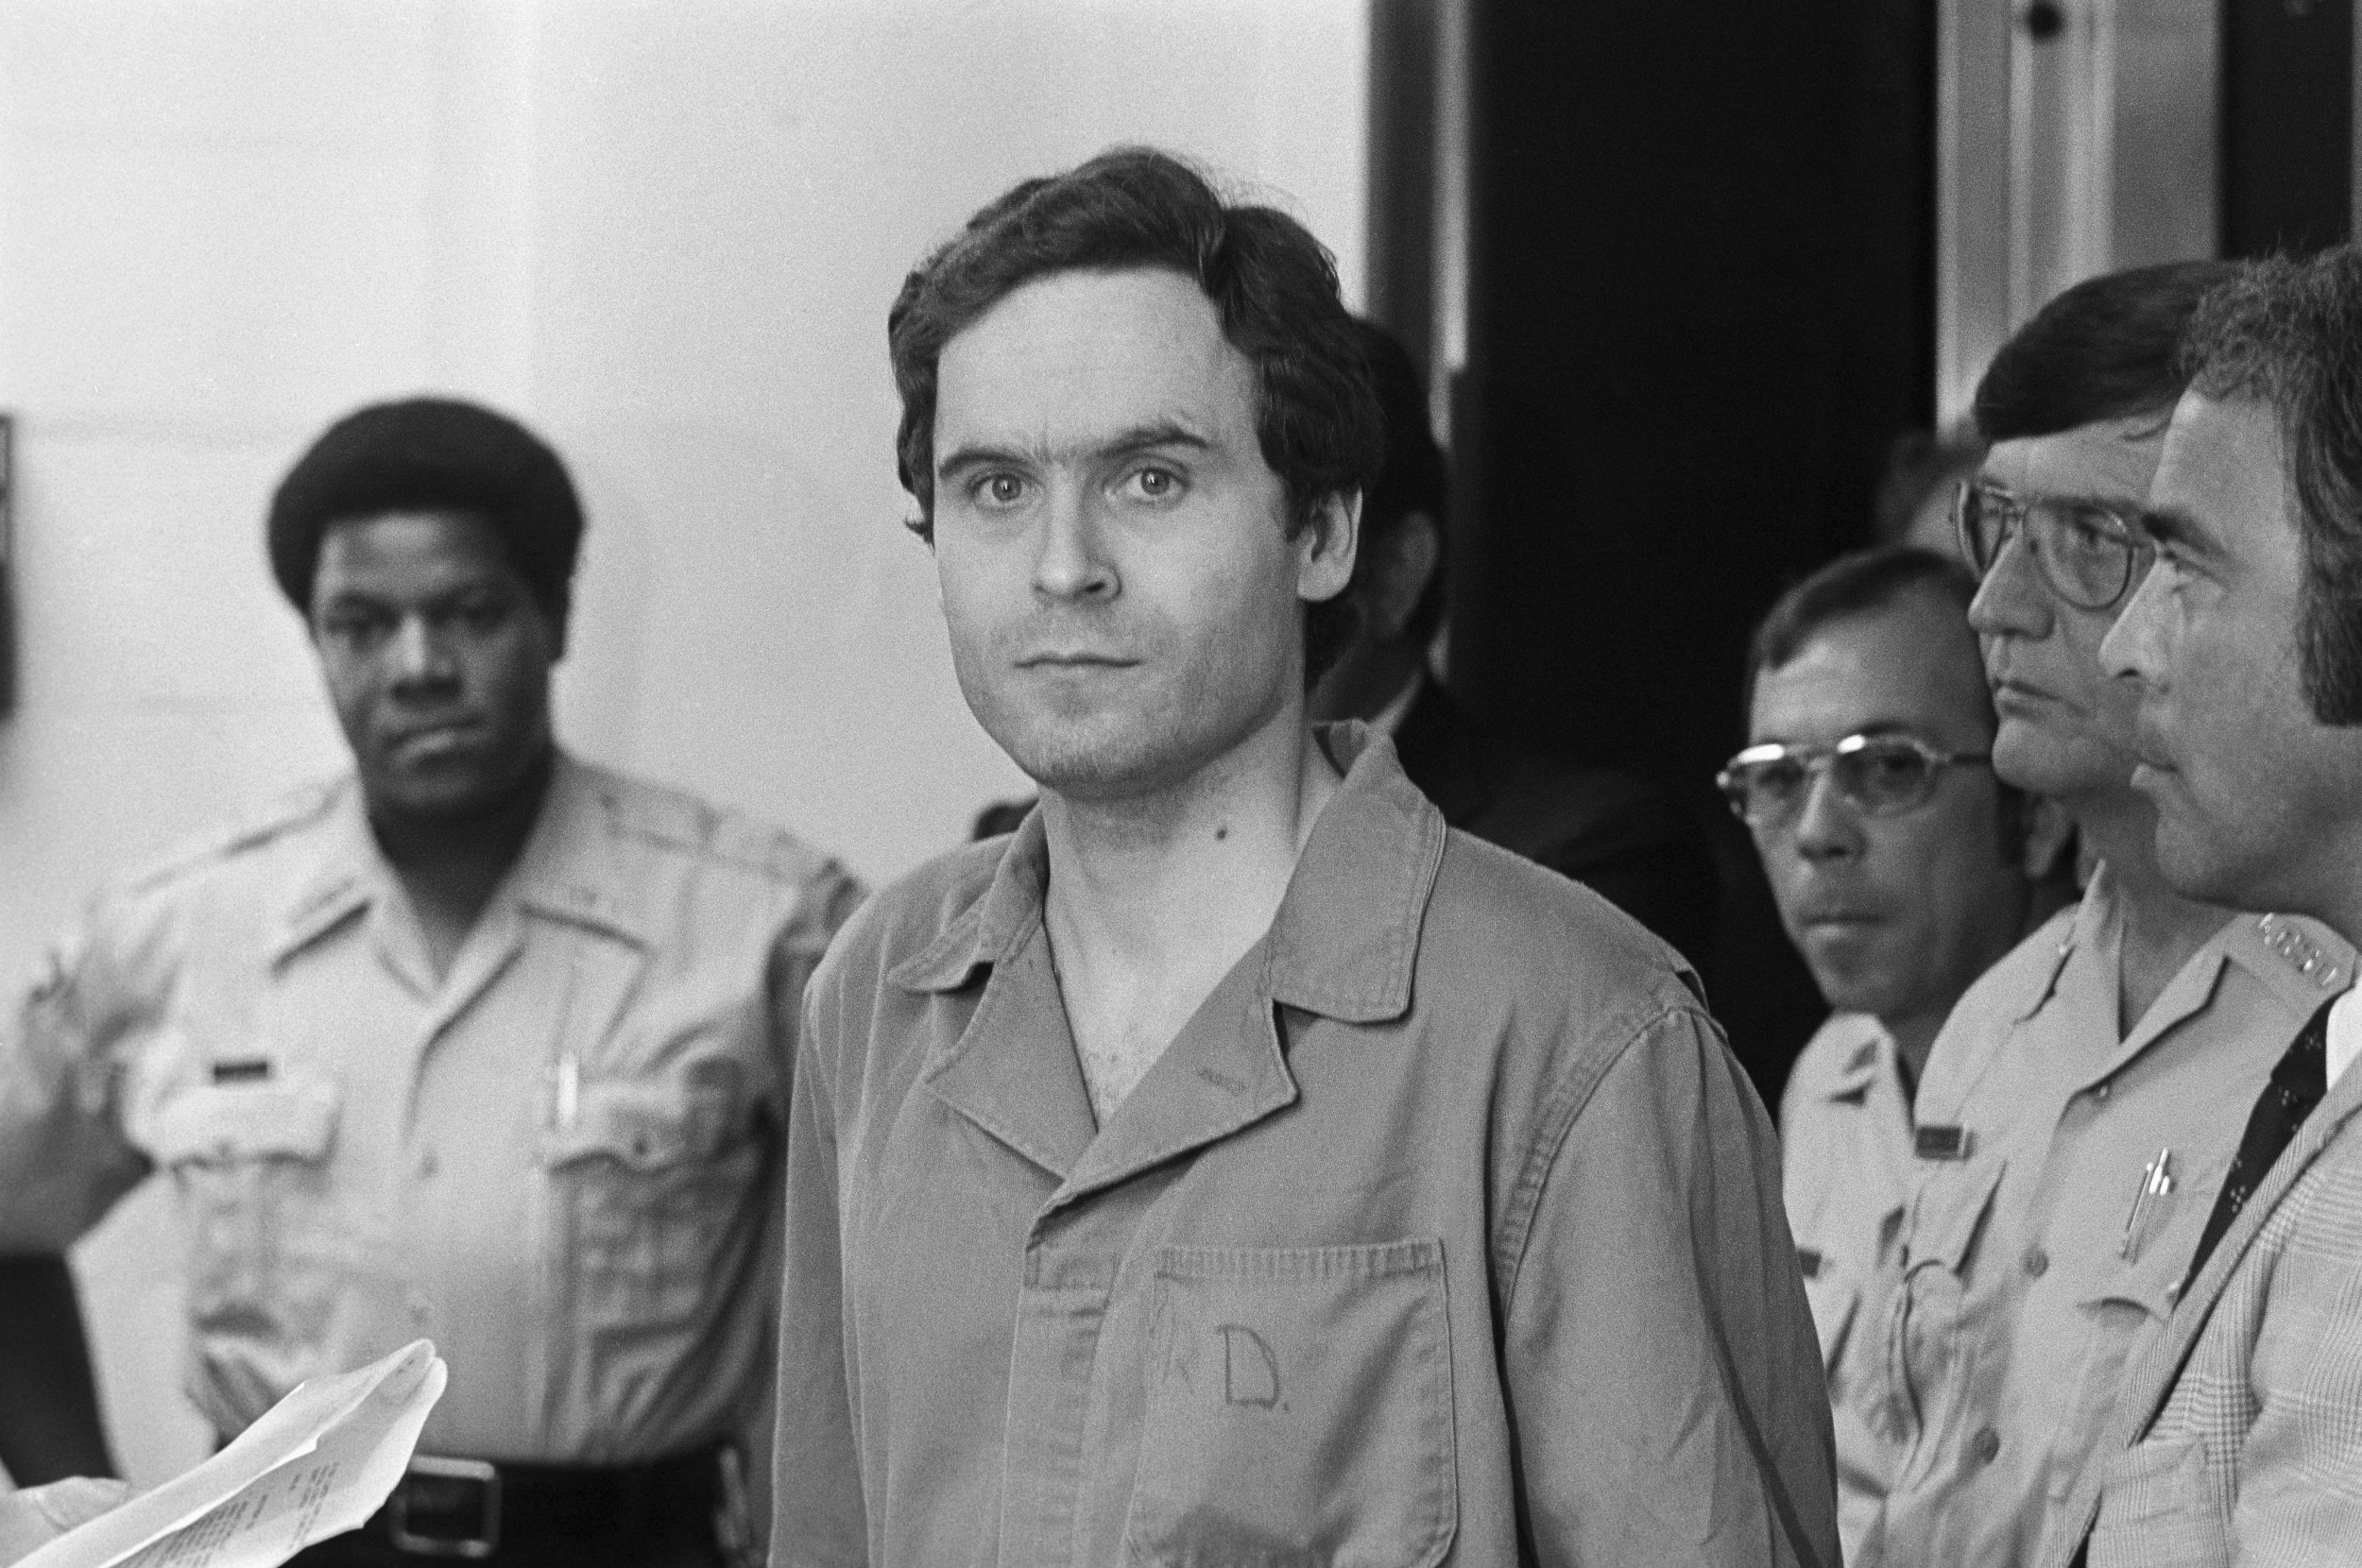 How to Watch New Ted Bundy Documentary Featuring His Former Girlfriend